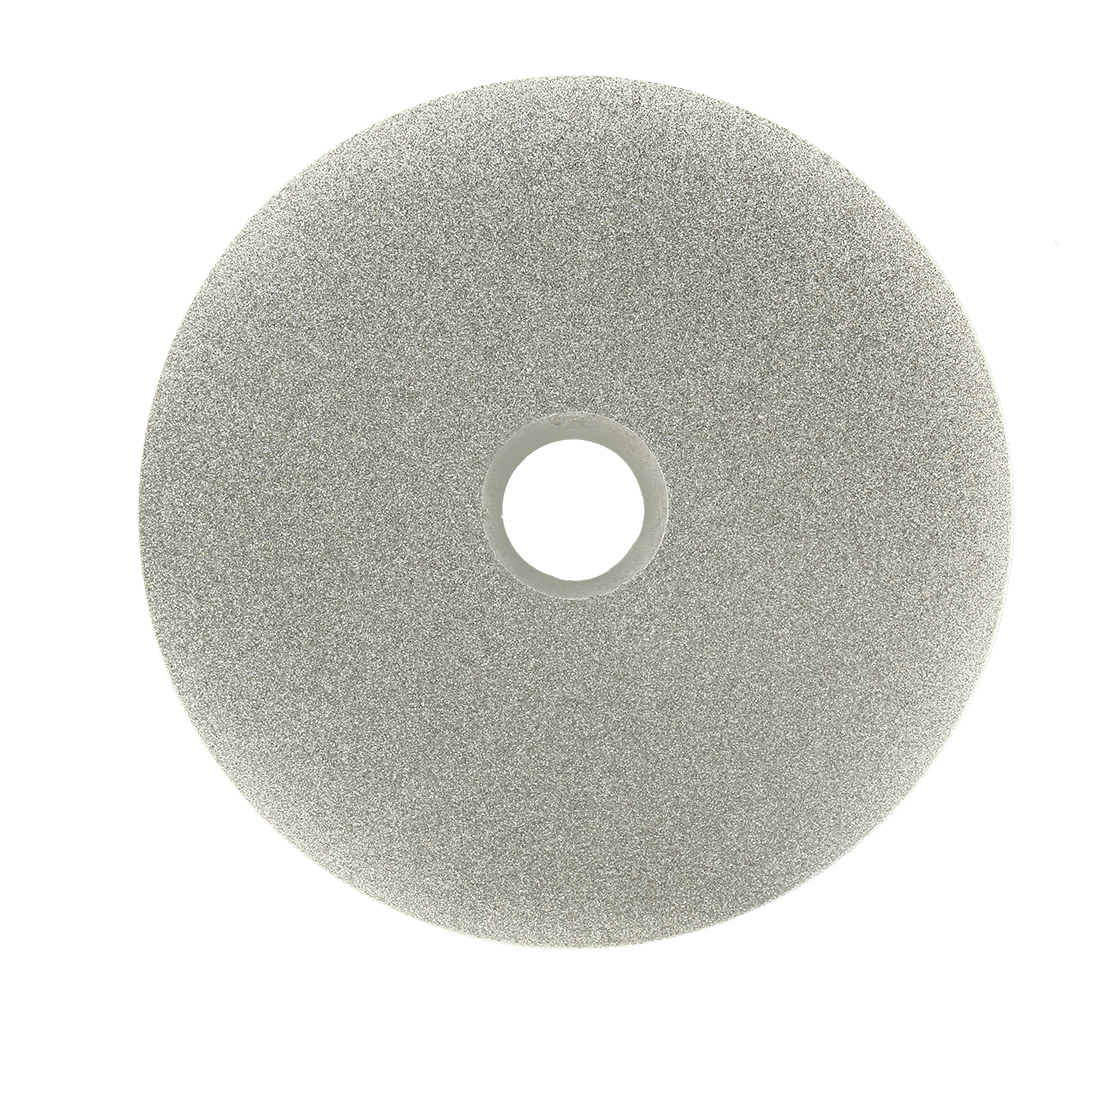 100mm 4-inch Grit 150 Diamond Coated Flat Lap Disk Wheel Grinding Sanding Disc